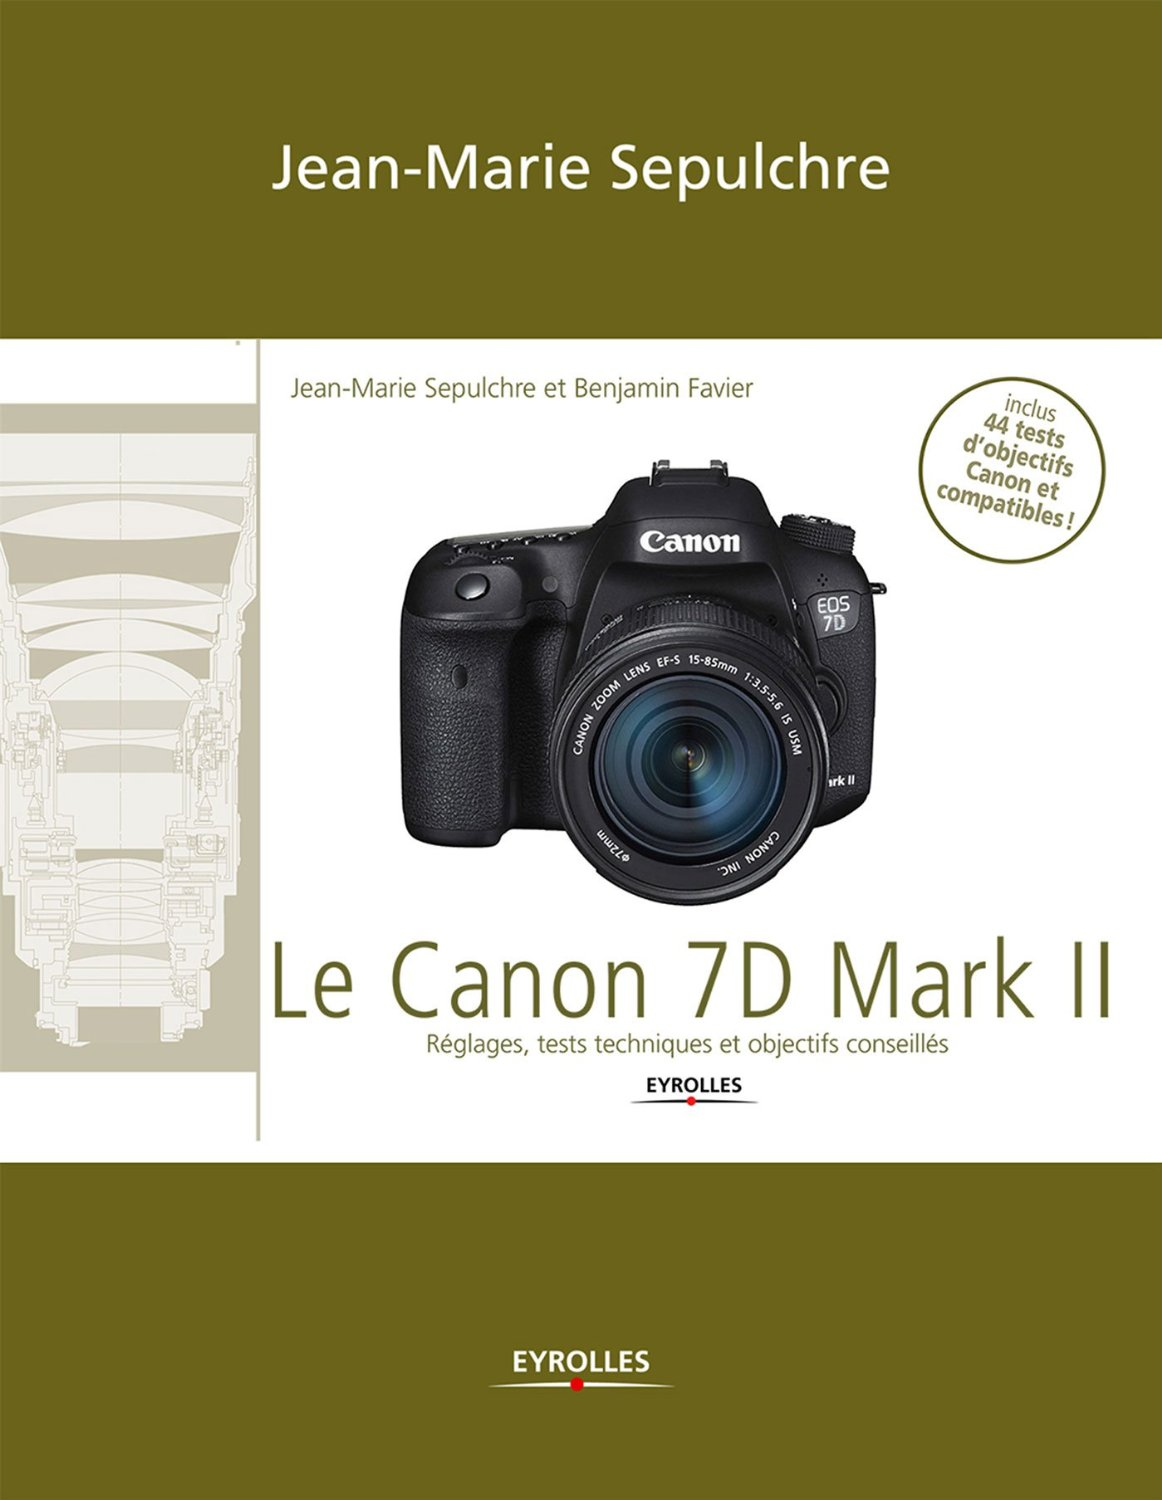 Le Canon 7D Mark II